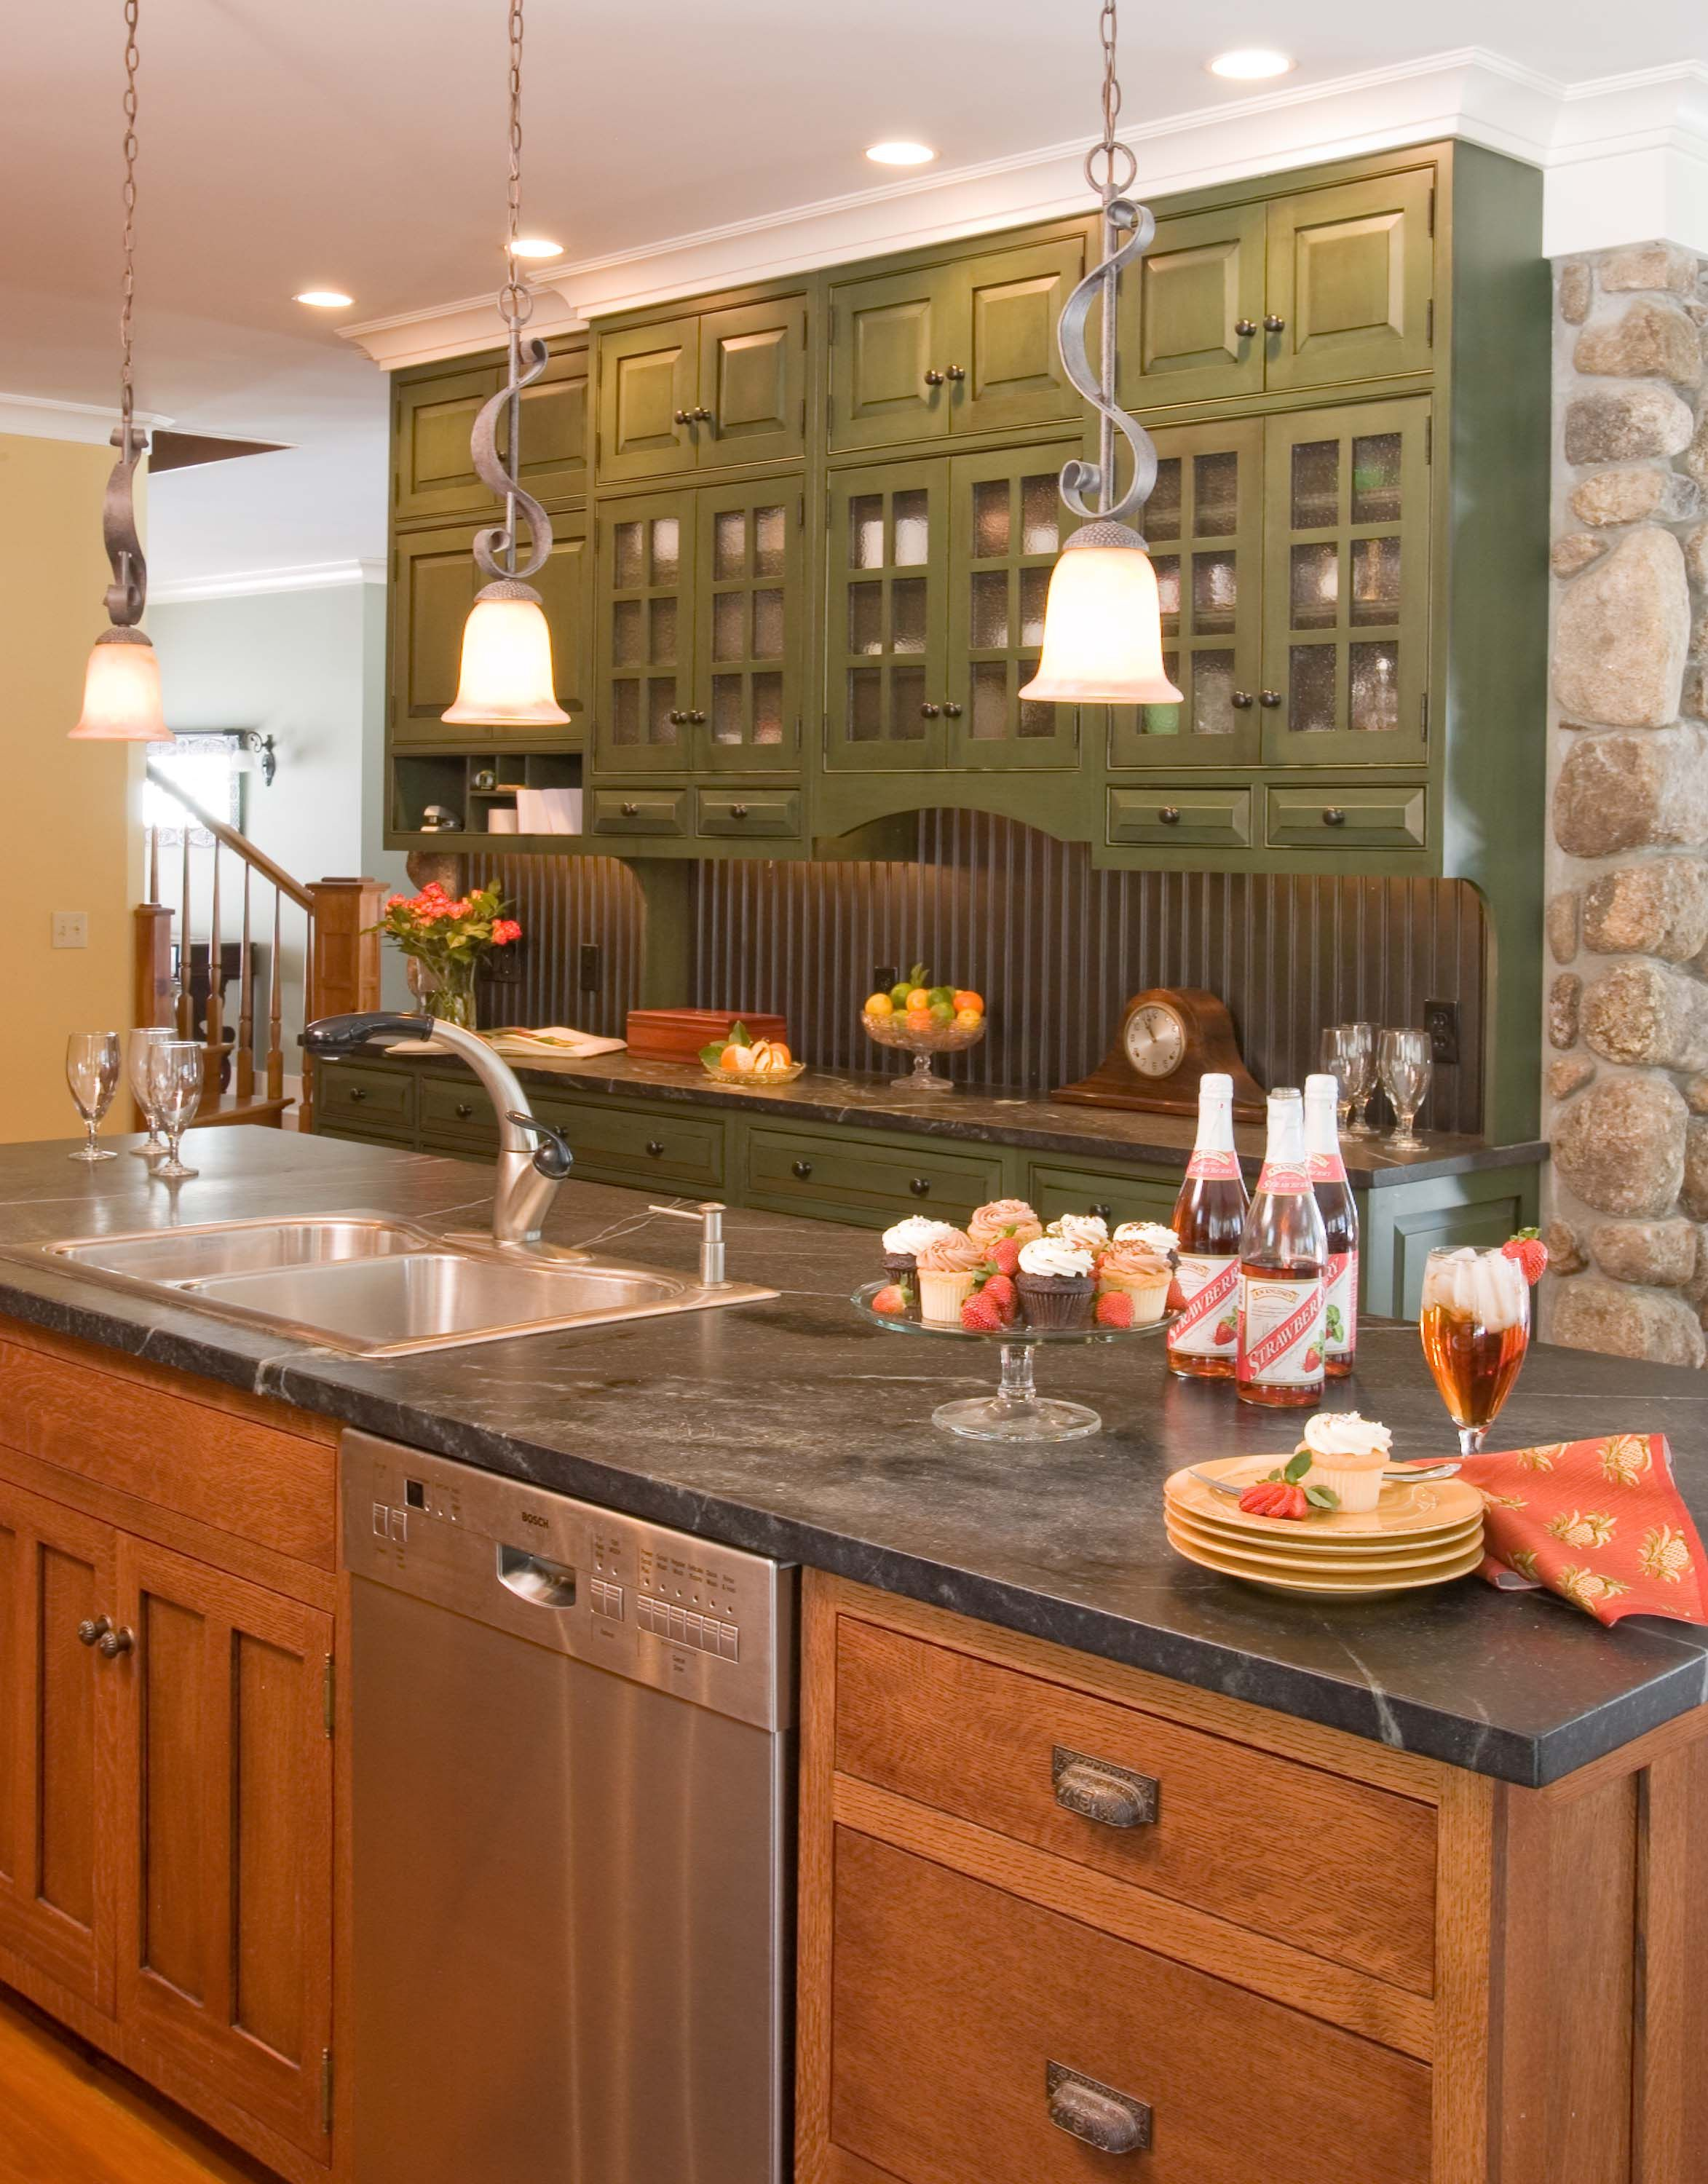 Arts And Crafts Quartersawn Oak Kitchen With Large Island Opposite Wall Green Kitchen Cabinets Kitchen Design Decor Kitchen Design